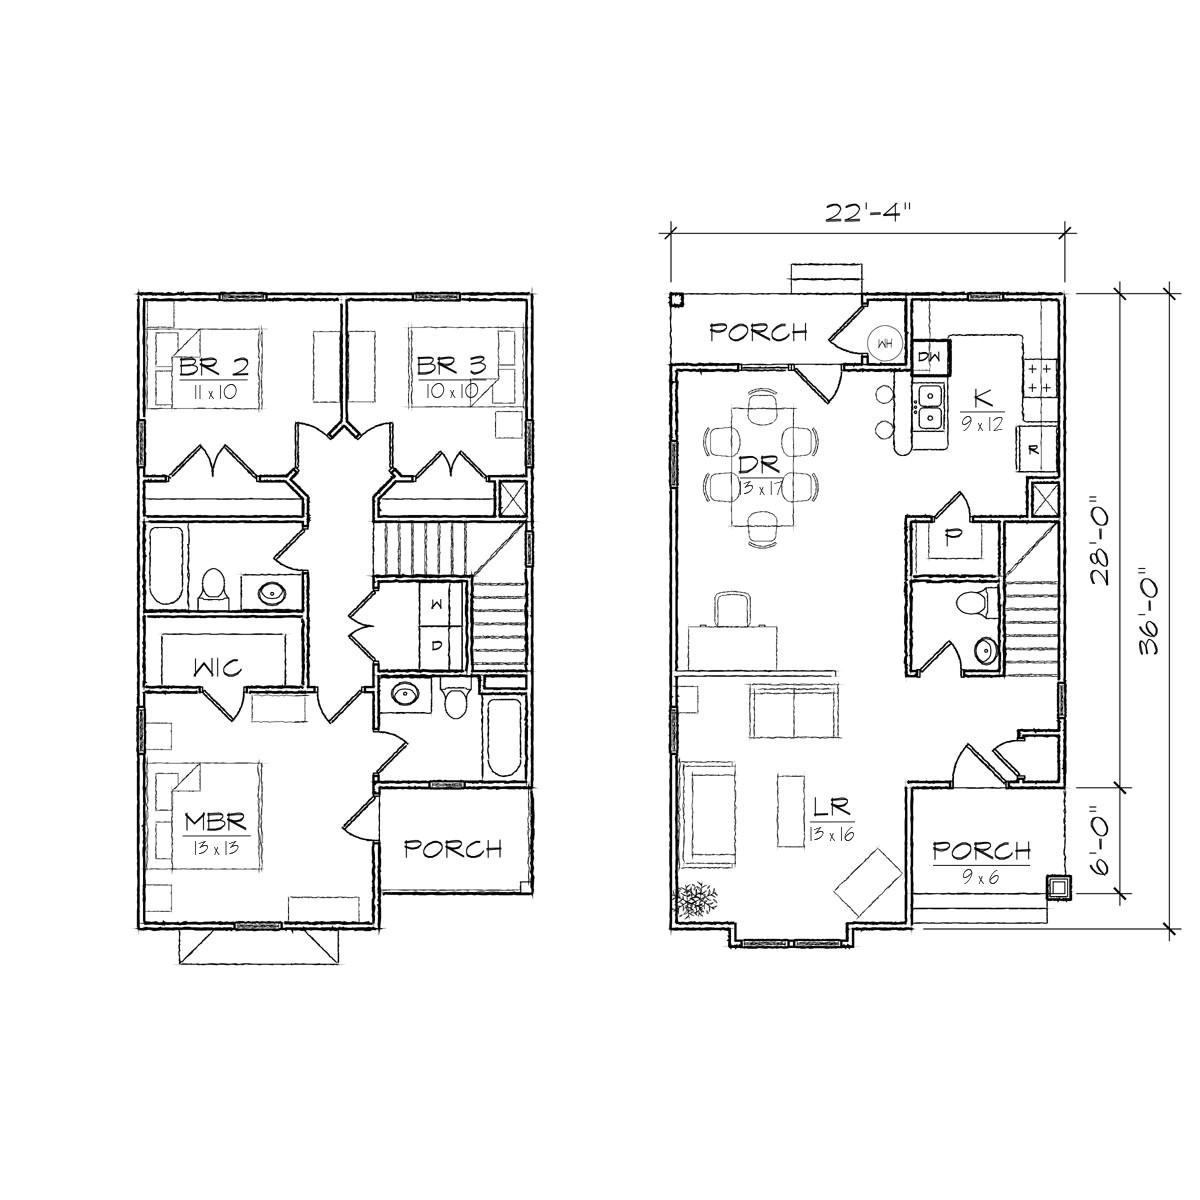 Home Plans for Small Lots Small House Plans for Narrow Lot Home Deco Plans